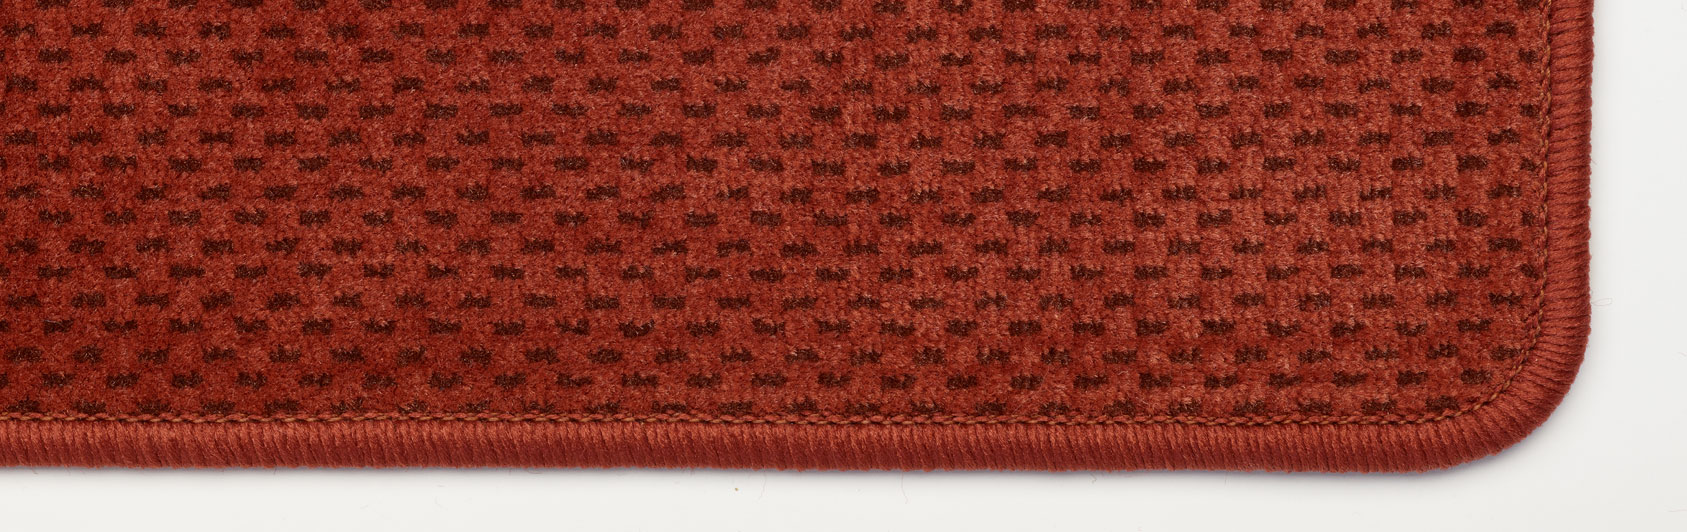 church carpet velvet color code 2401 color red